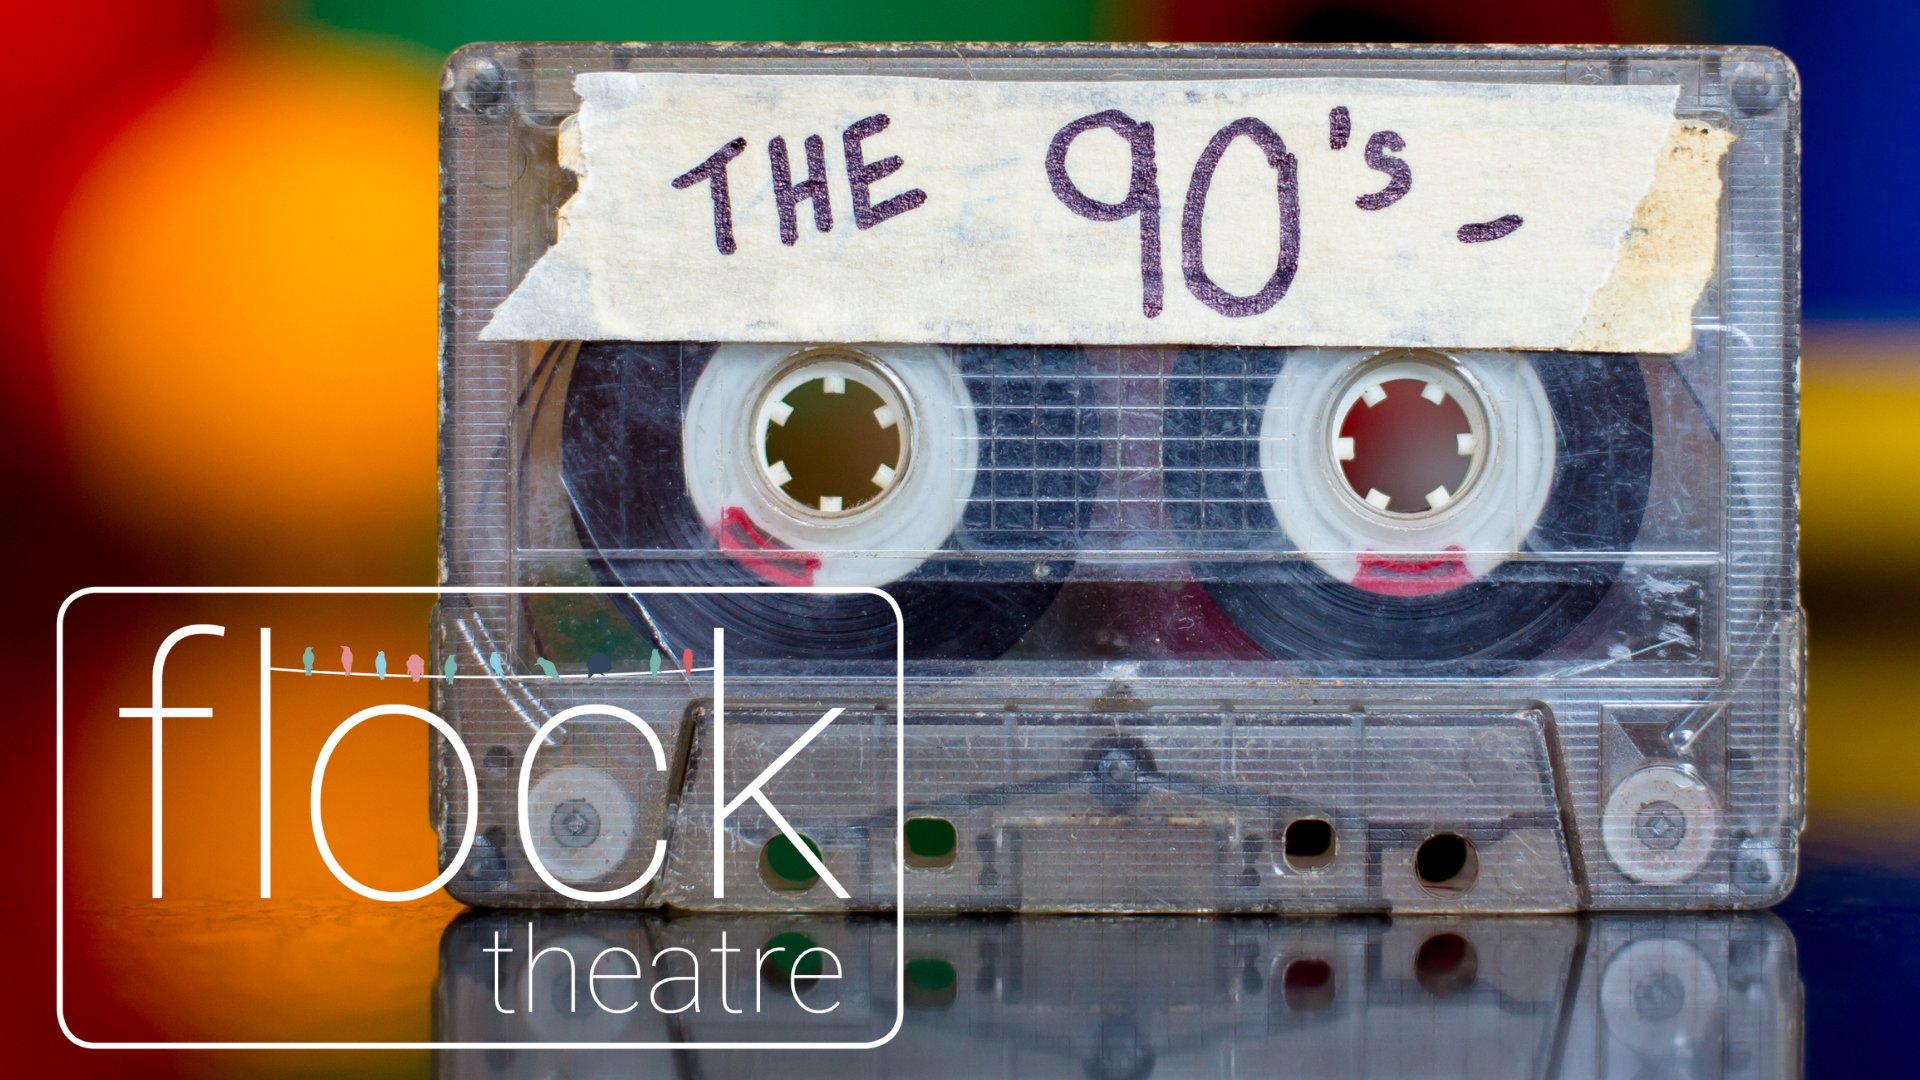 A cassette tape with a white sticker where it's written The 90s on a colorful background and the Flock logo.